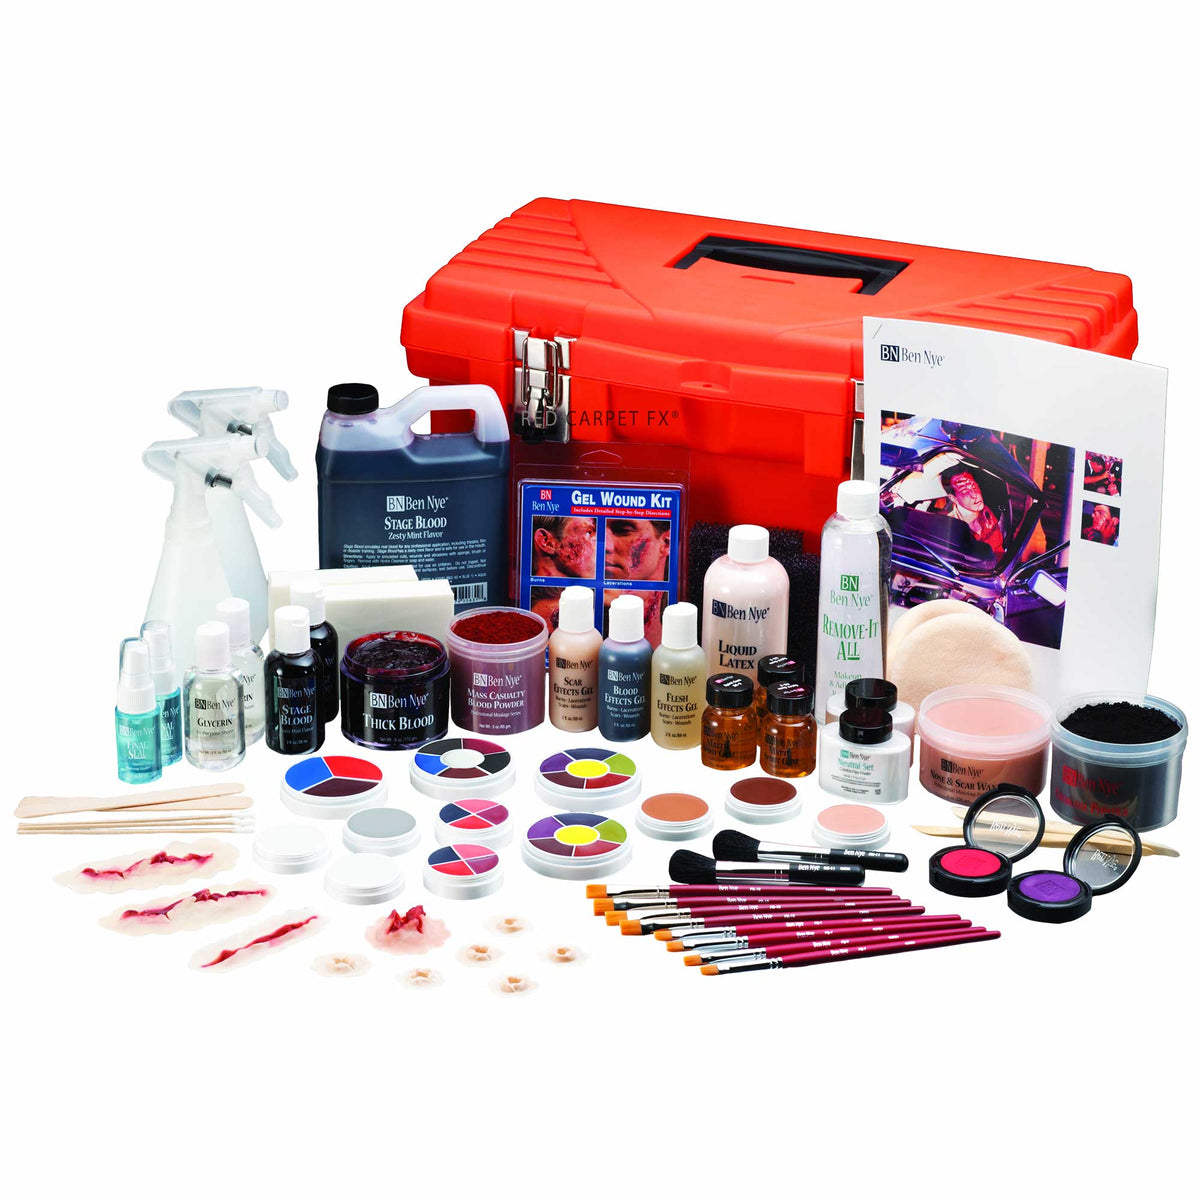 Ben Nye EMT Master Moulage Kit - Ultimate Pro Special FX Kit